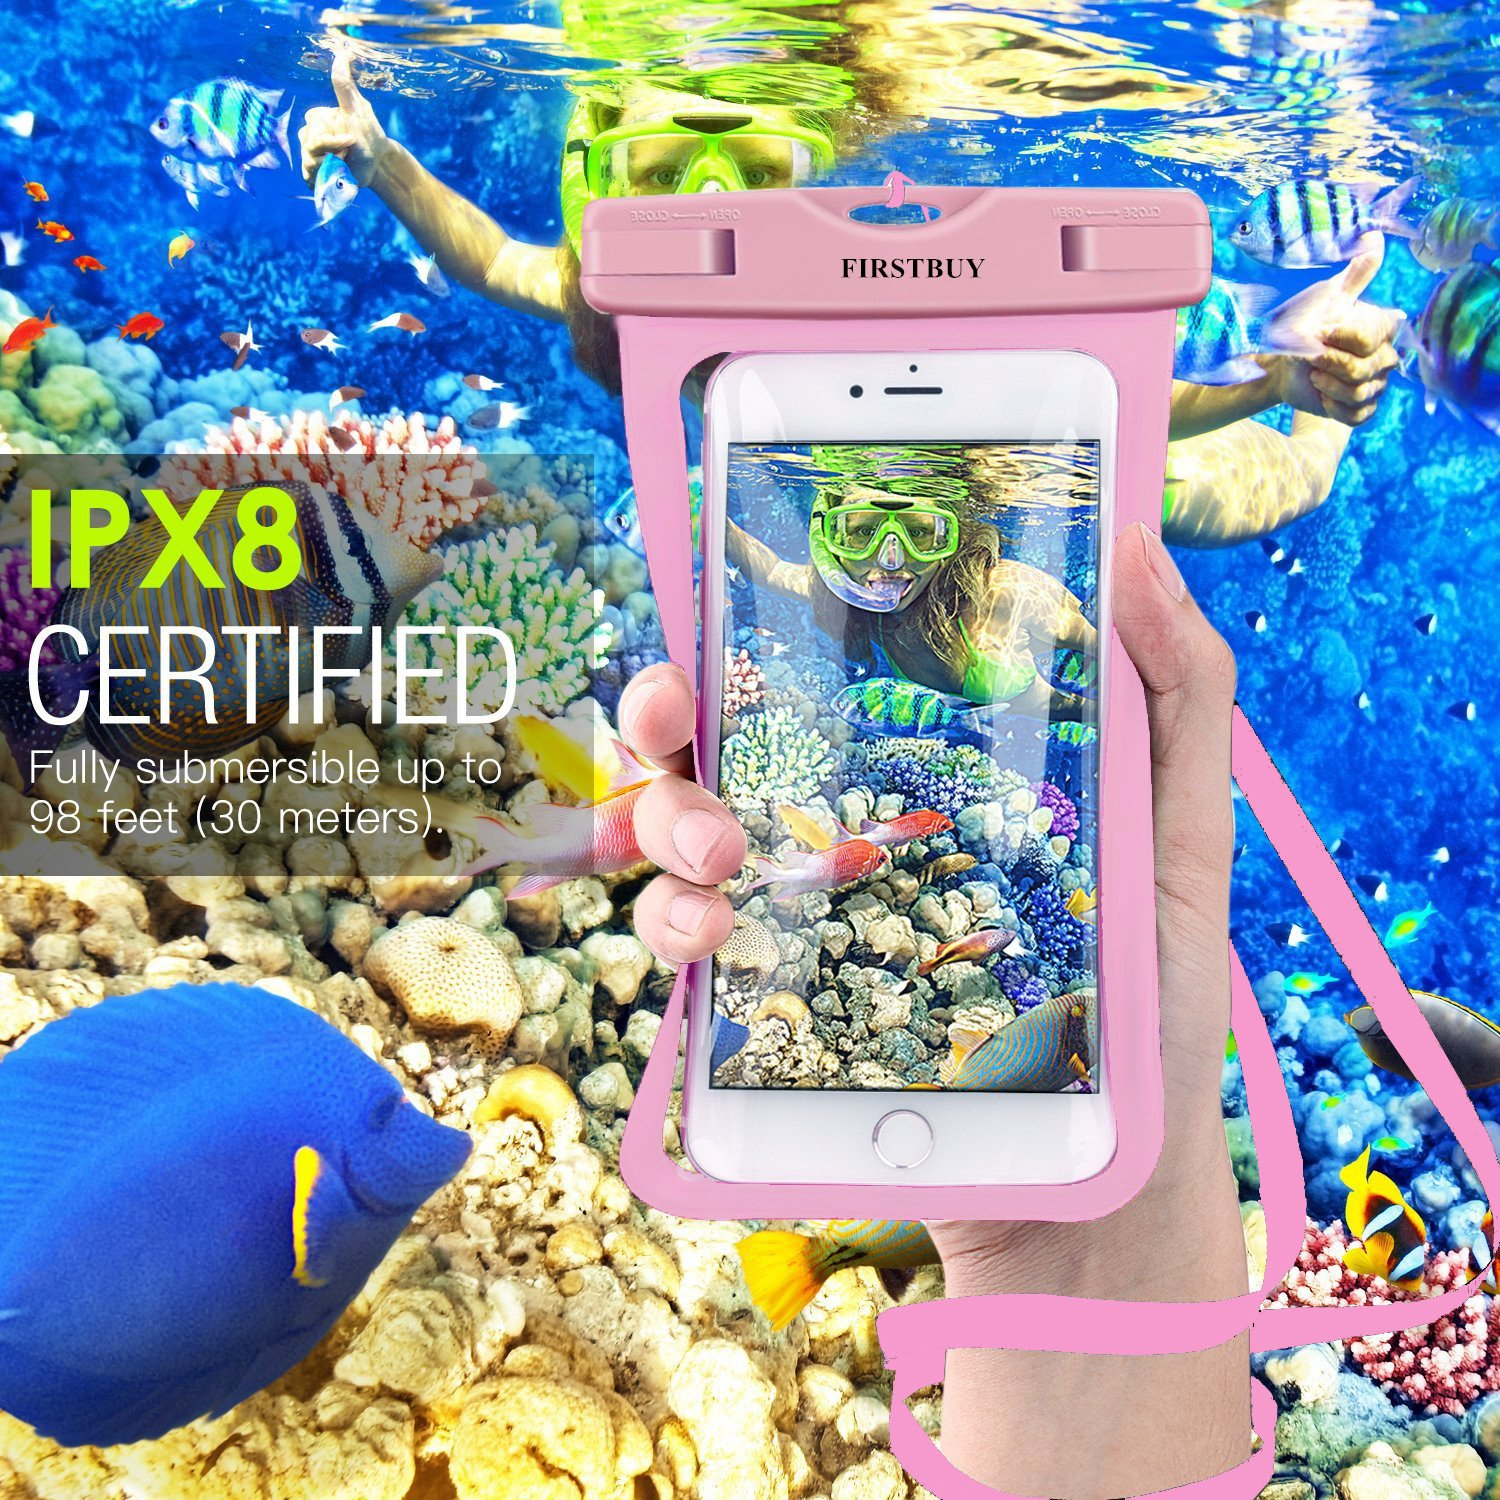 FIRSTBUY waterproof case Universal Waterproof Phone Pouch IPX8 phone Case Clear Sensitive PVC Screen Dry Bag for iPhone X/8/8PLUS/7/7PLUS/6S Samsung Galaxy S9/S8/S7 HTC10 Google Sony Nokia (2 pack)